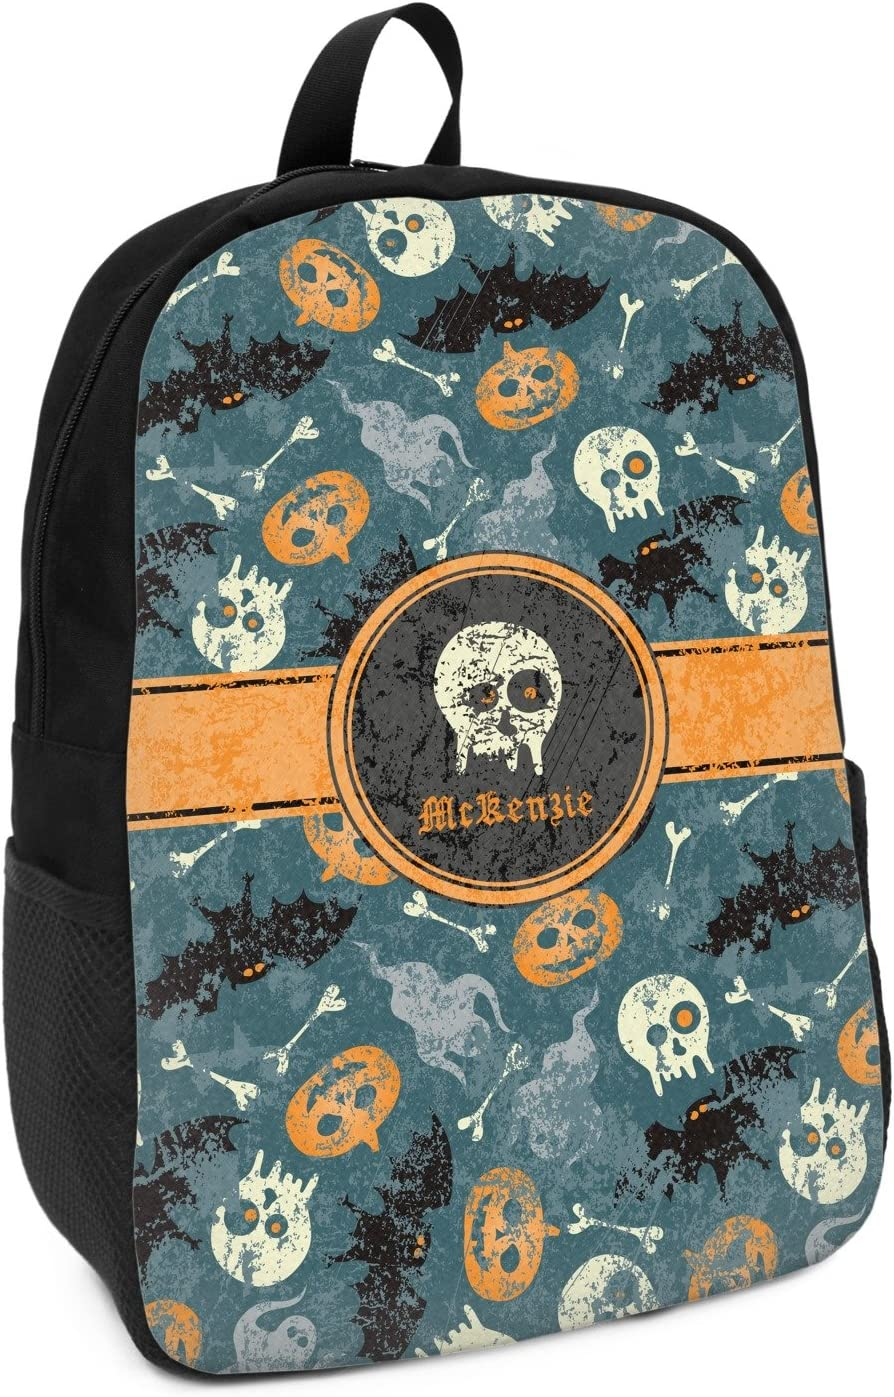 Personalized Vintage//Grunge Halloween Kids Backpack